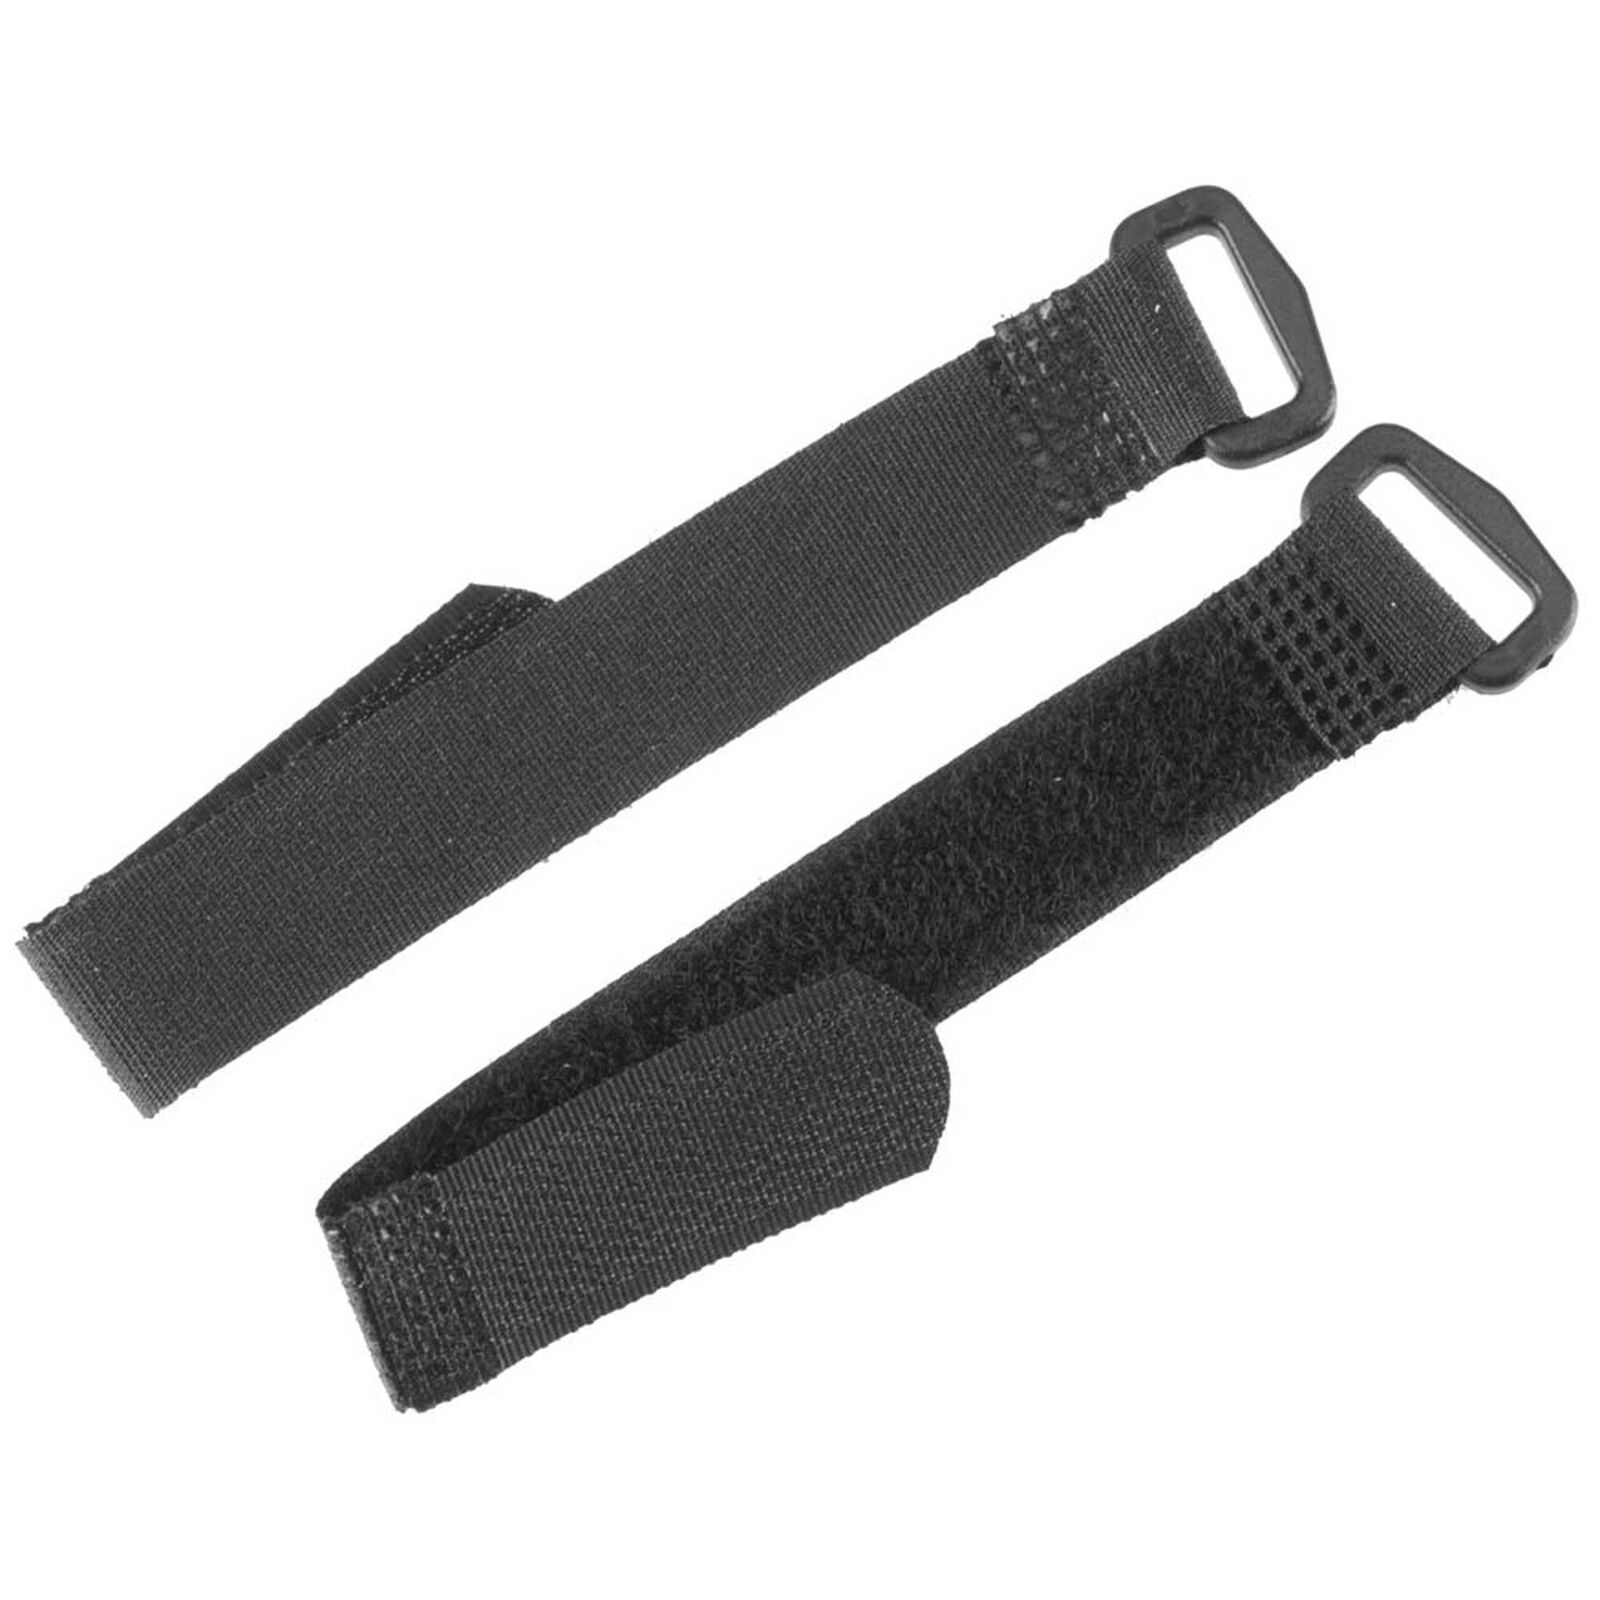 Hook & Loop Strap 16x200mm